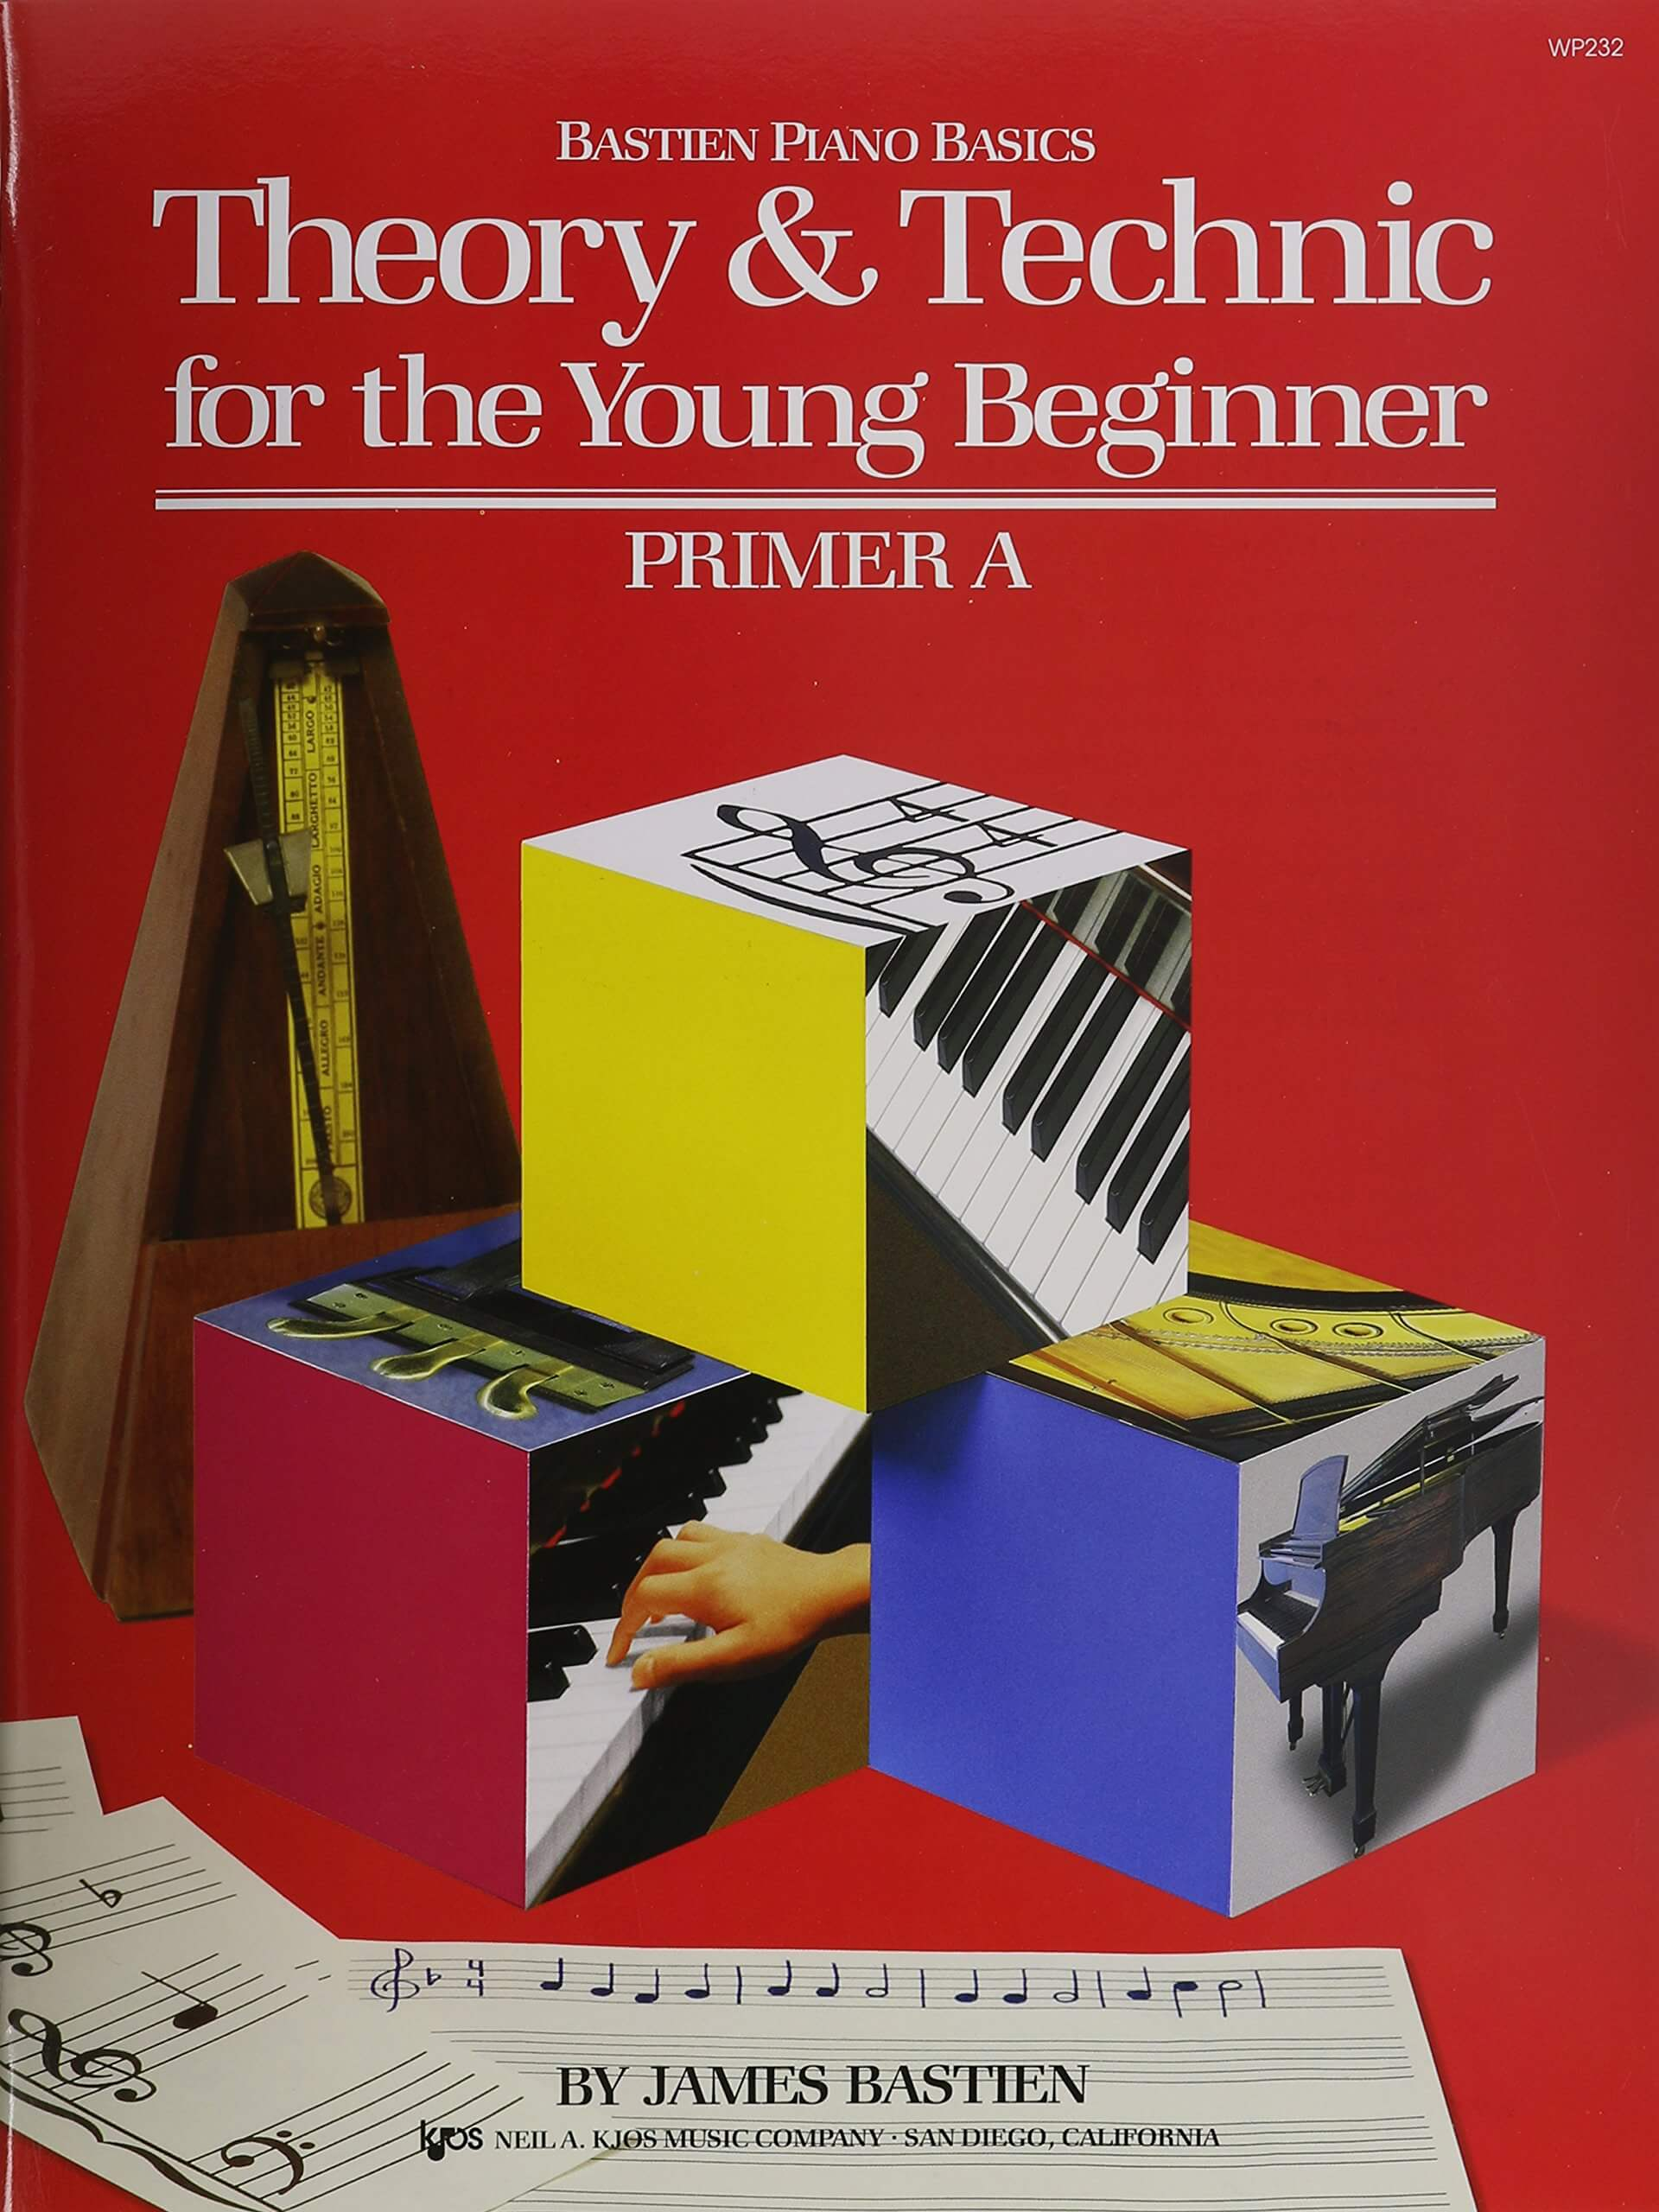 WP232 – Theory & Technic for the Young Beginner